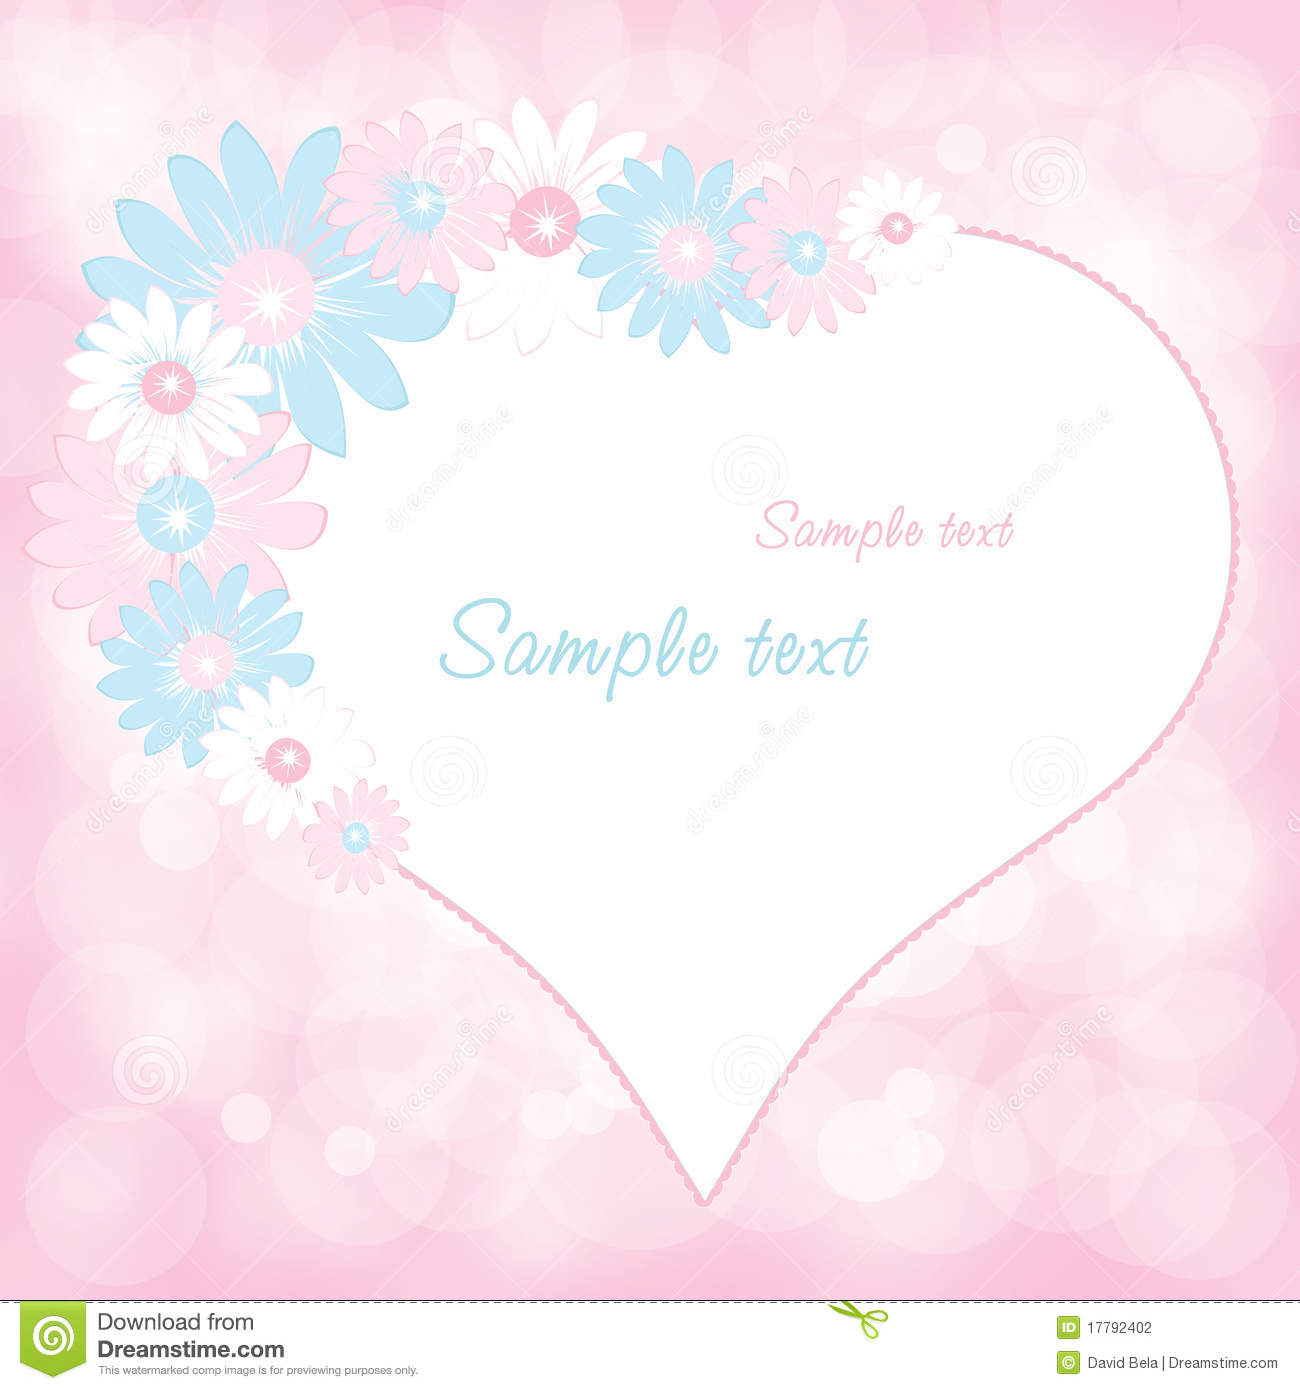 Valentine 39 s day card design stock photography image for Valentines day card design